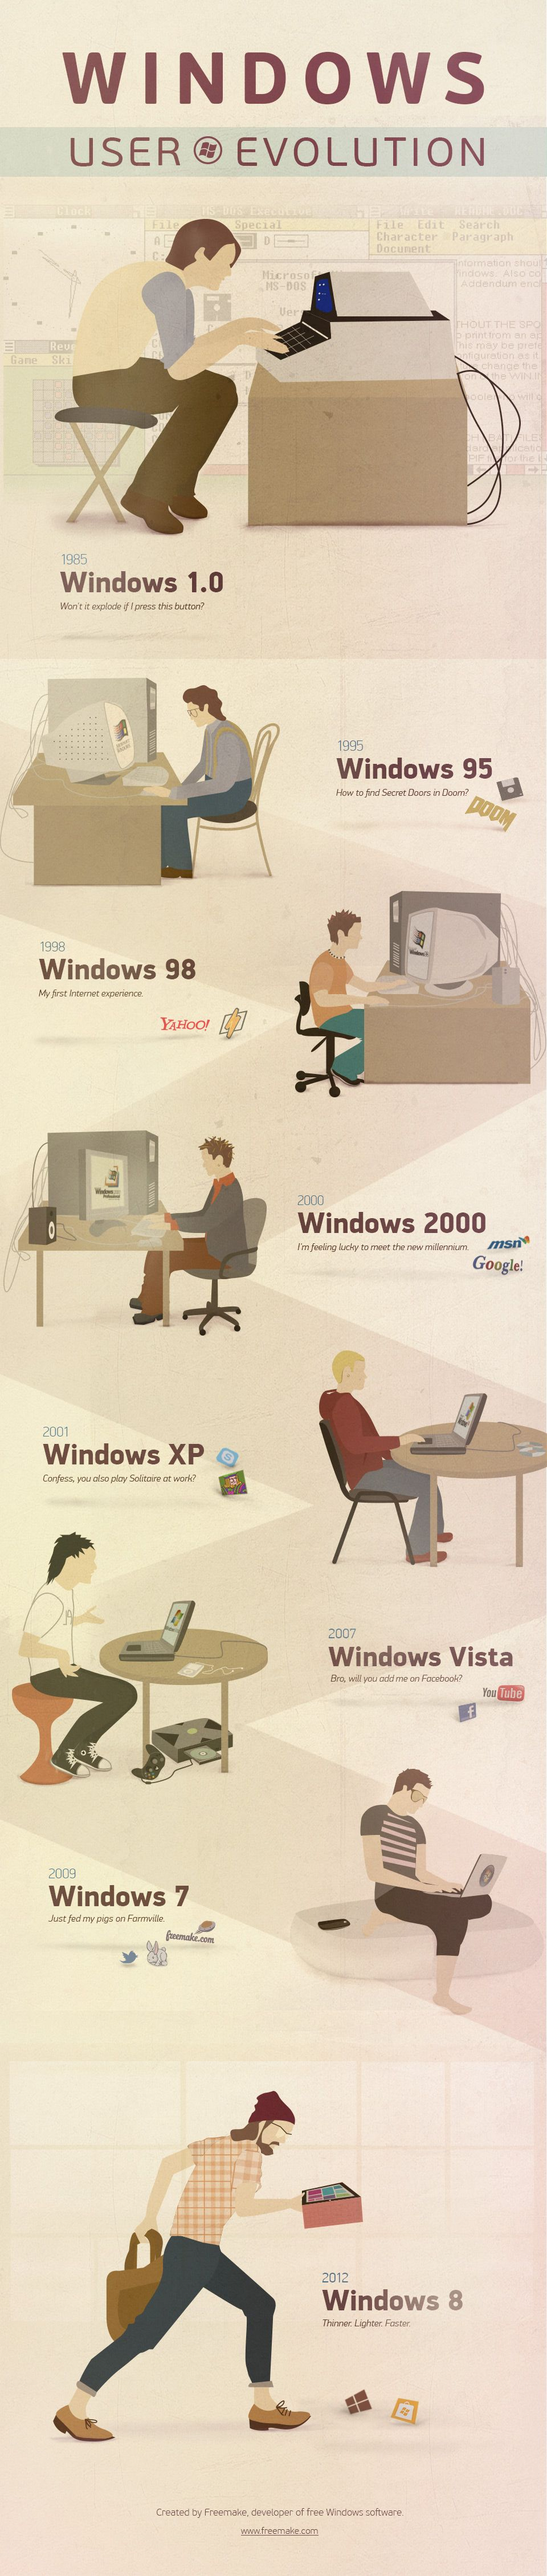 the evolution of windows os from beginning to present infographic